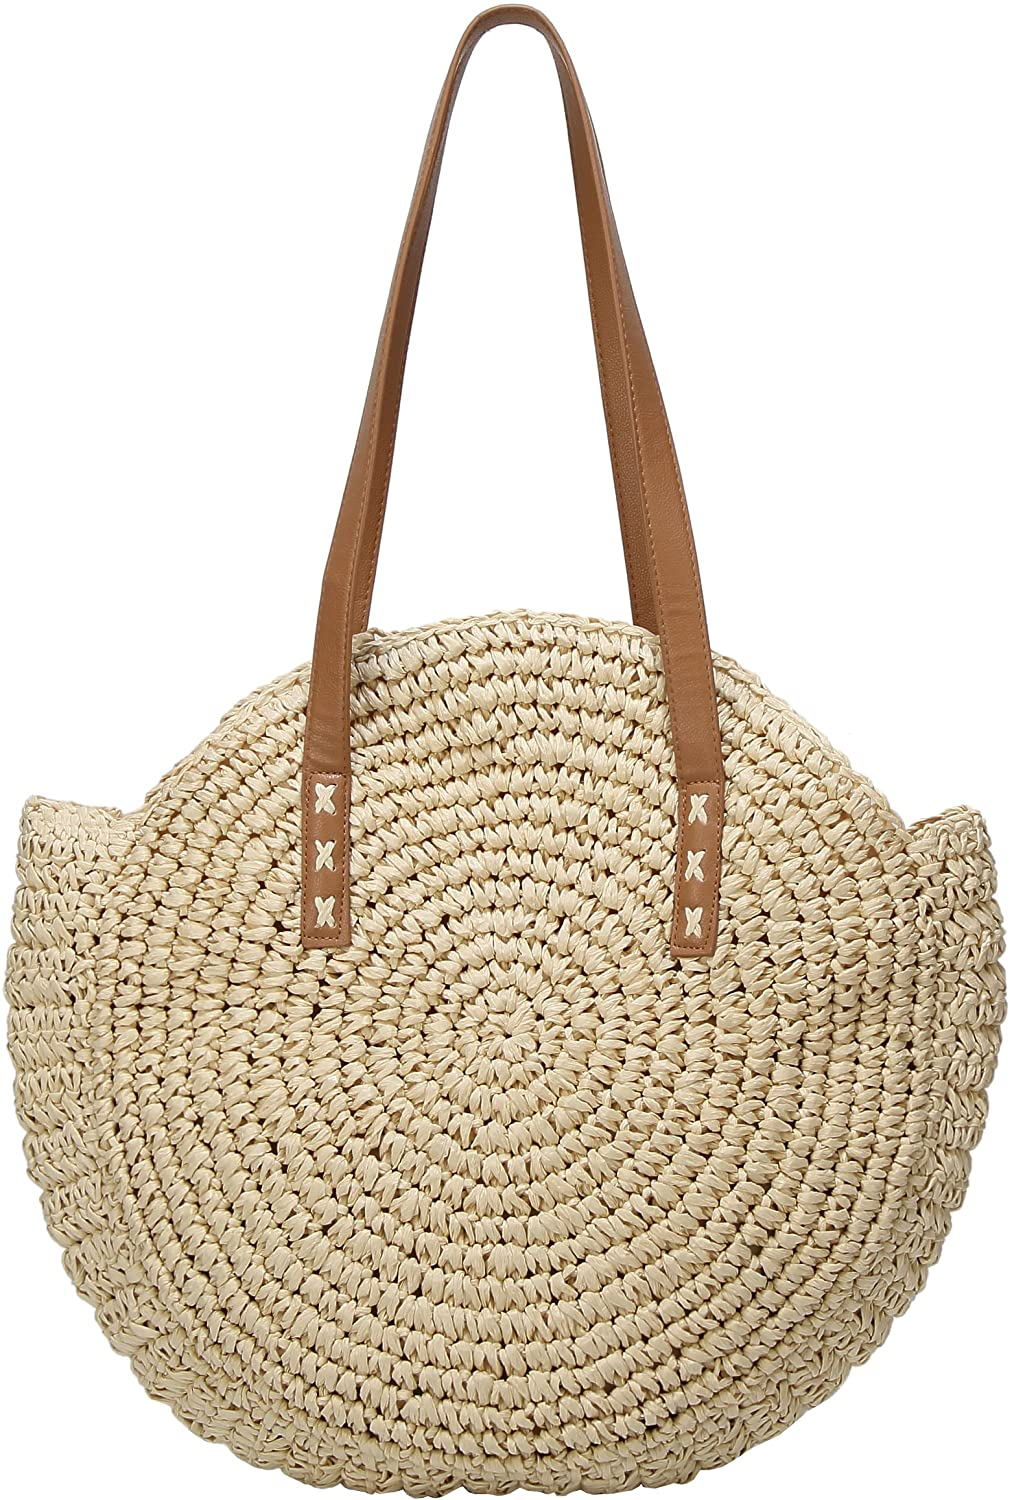 Molodo Round Summer Straw Large Woven Bag Purse For Women Vocation Tote Handbags